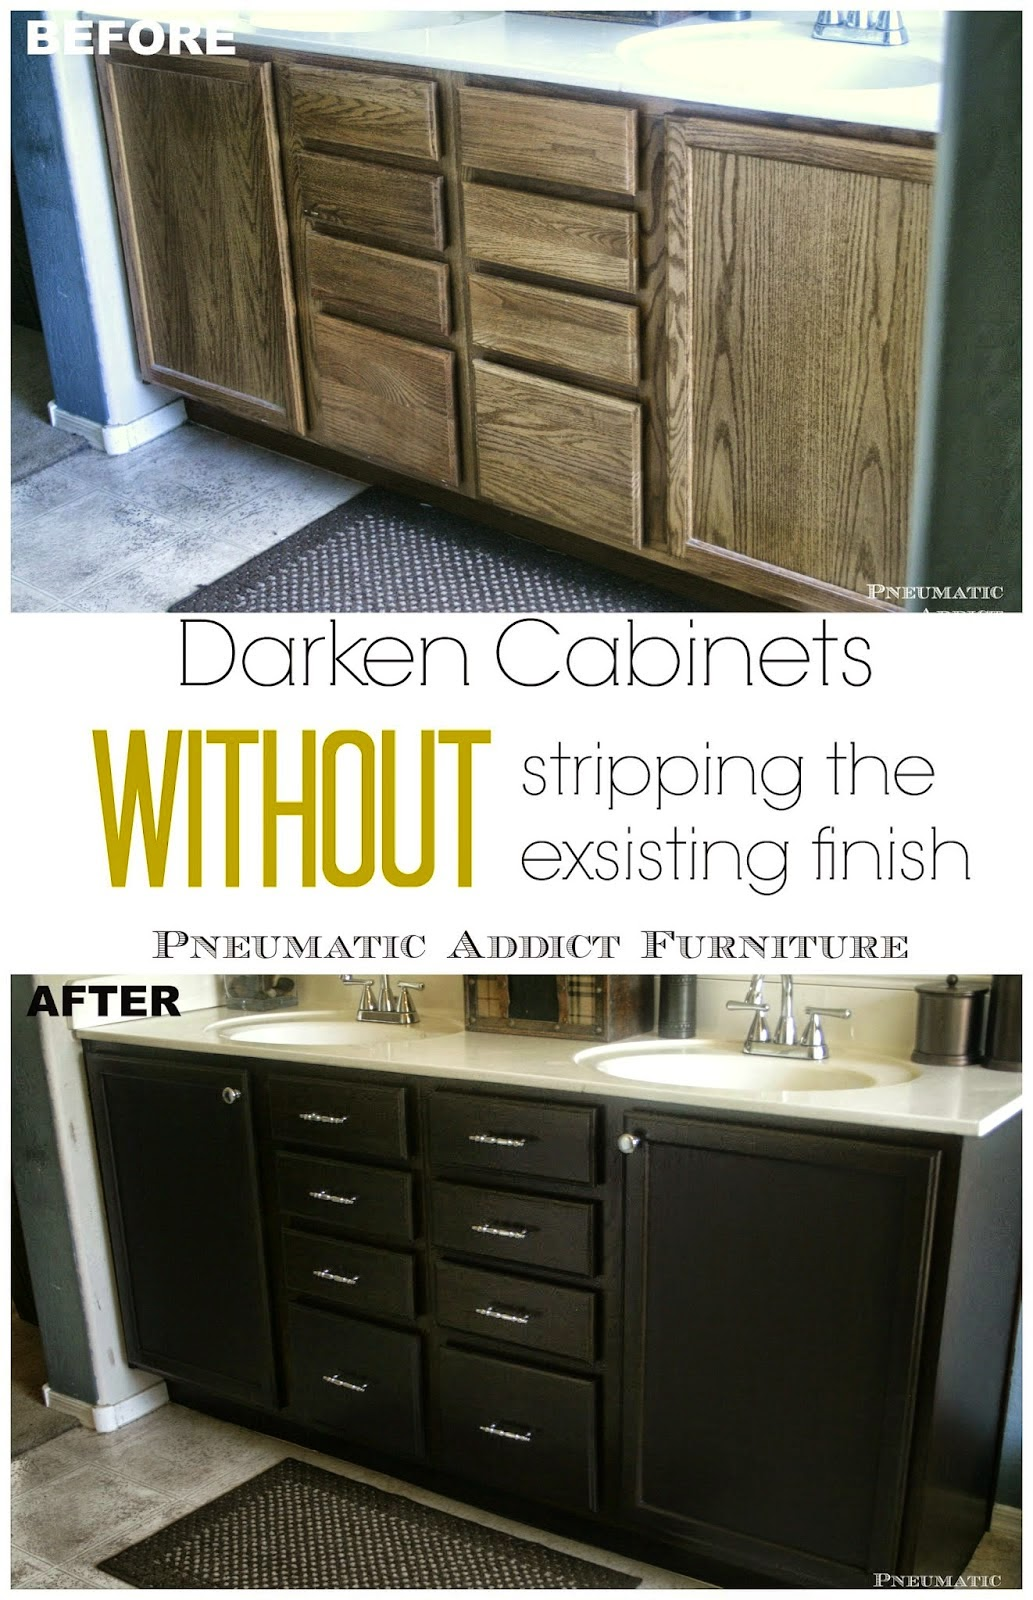 Darken cabinets without stripping